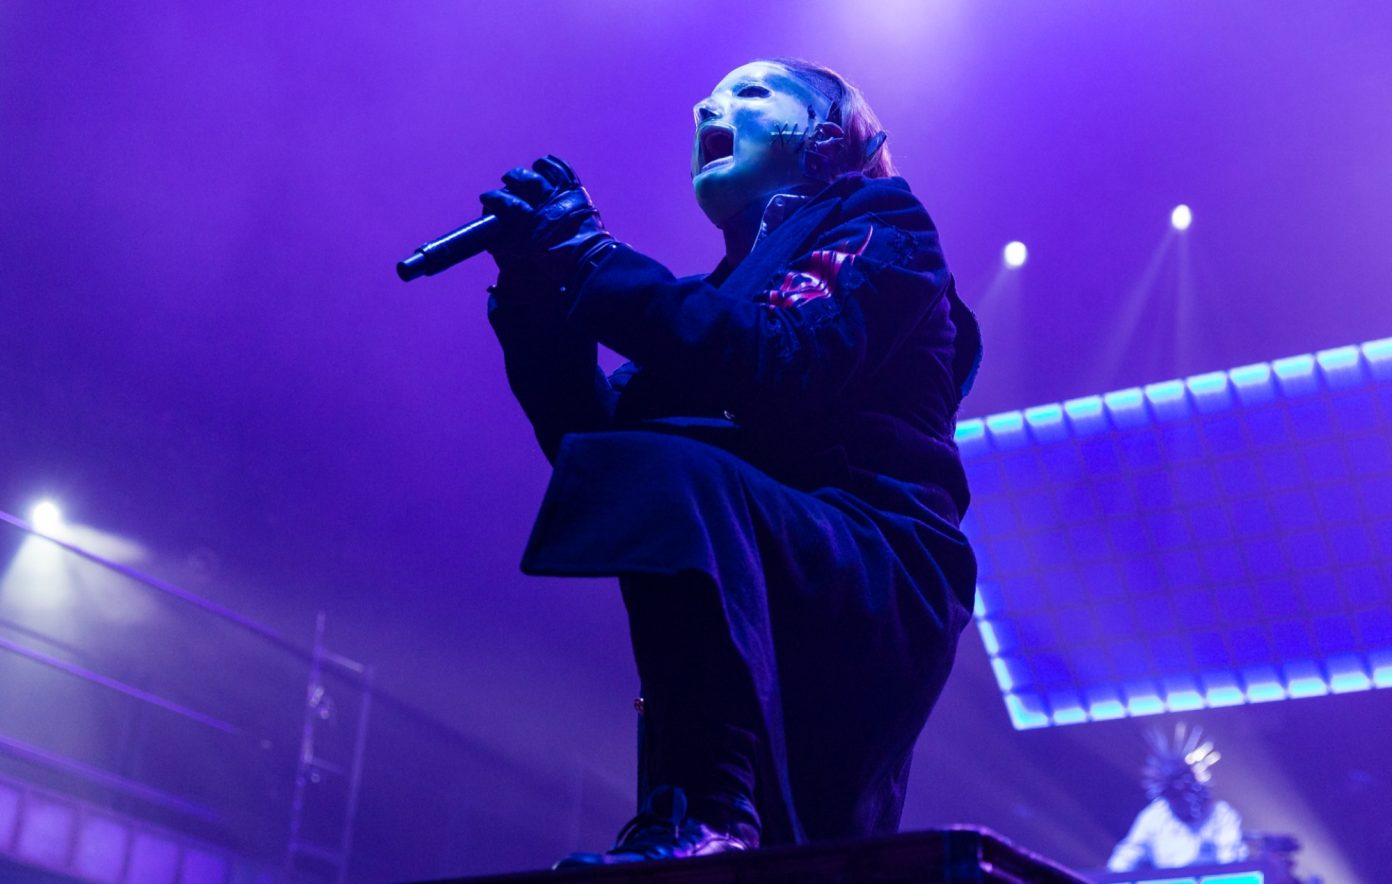 Slipknots Corey Taylor Recalls The Person He Could Not